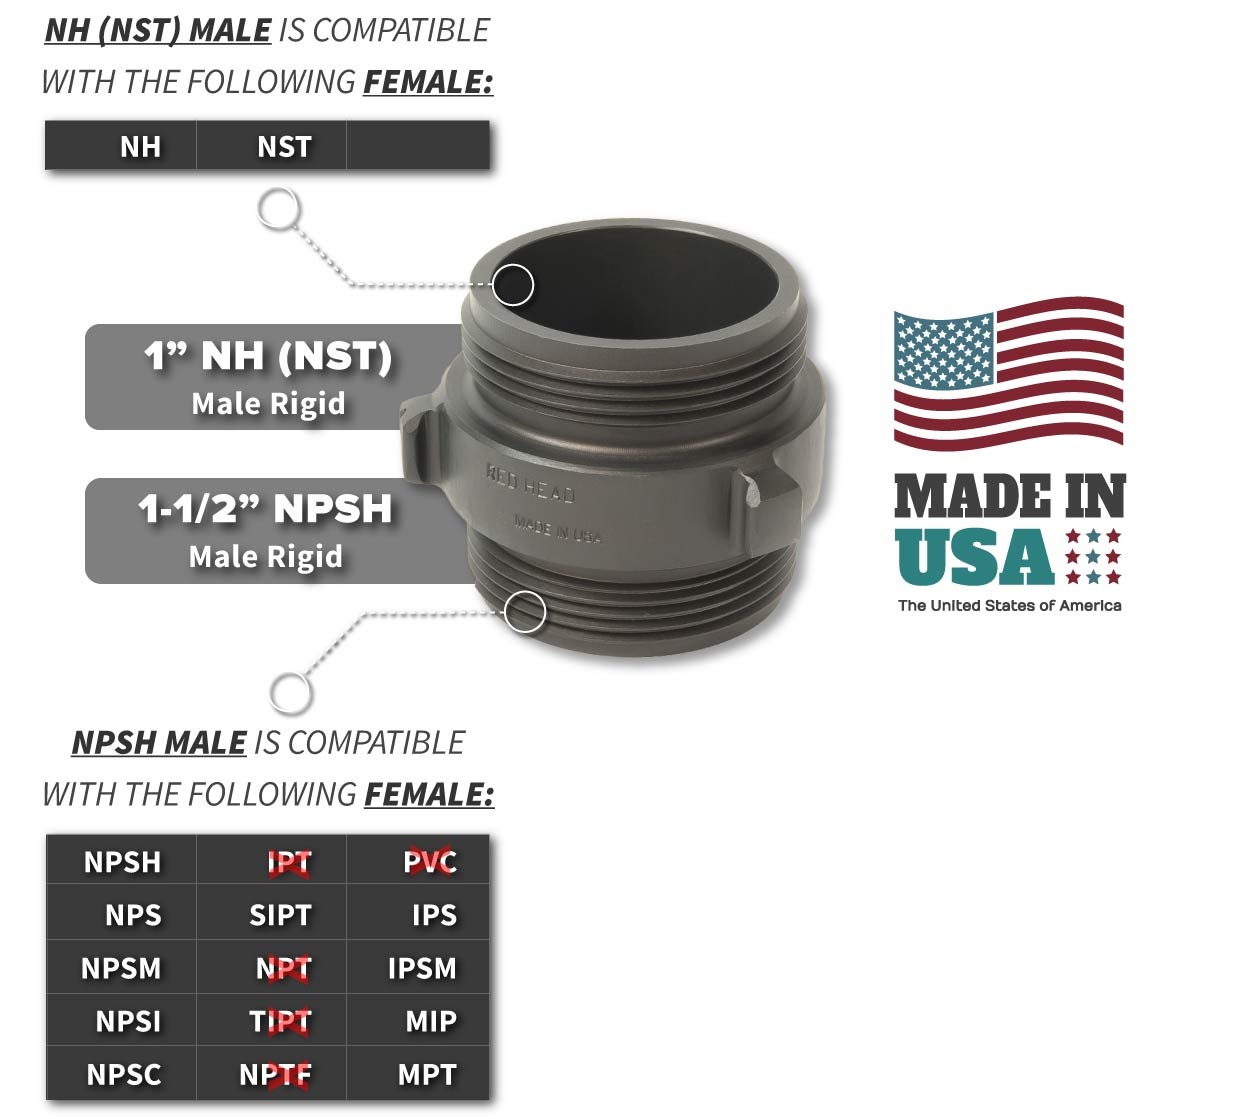 1 Inch NH-NST Male x 1.5 Inch NPSH Male Compatibility Thread Chart